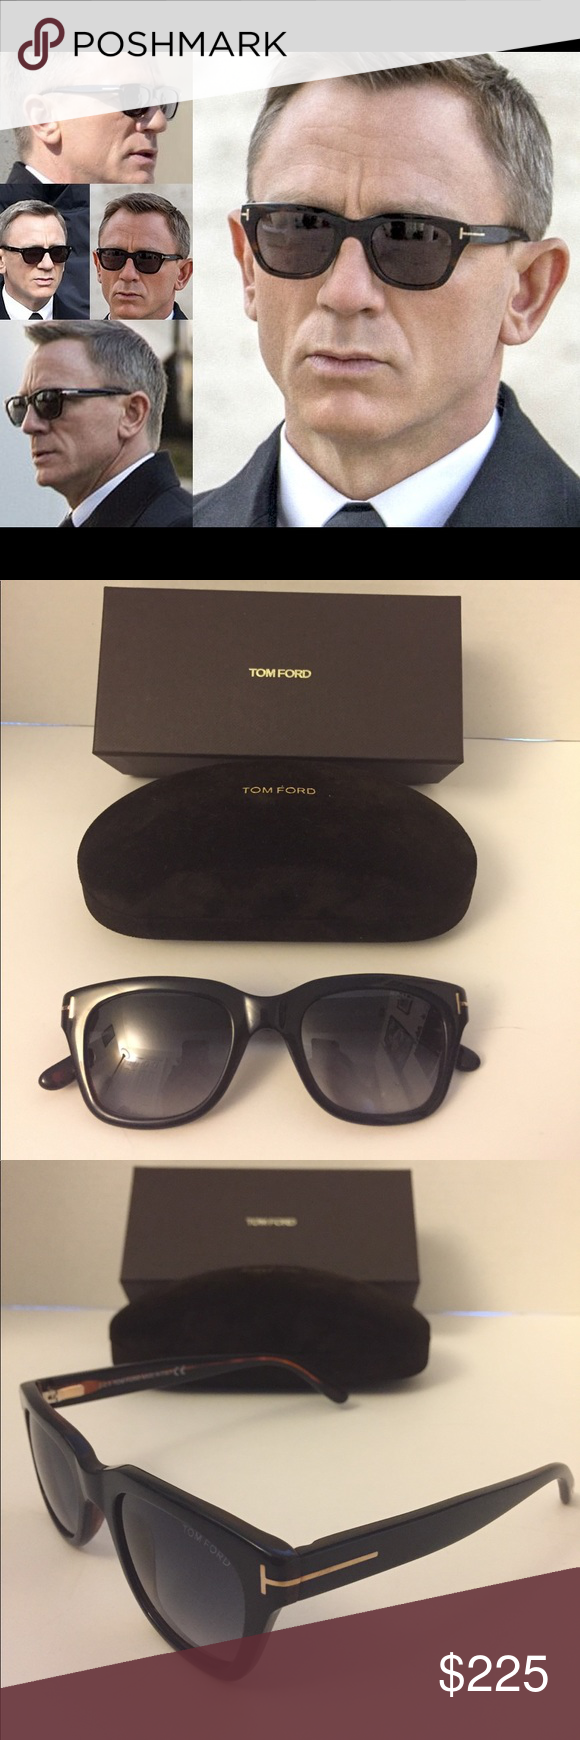 6cd91dc31116 100% Authentic -Tom Ford Snowdon Sunglasses FT0237 The Same Model as Worn  by Daniel